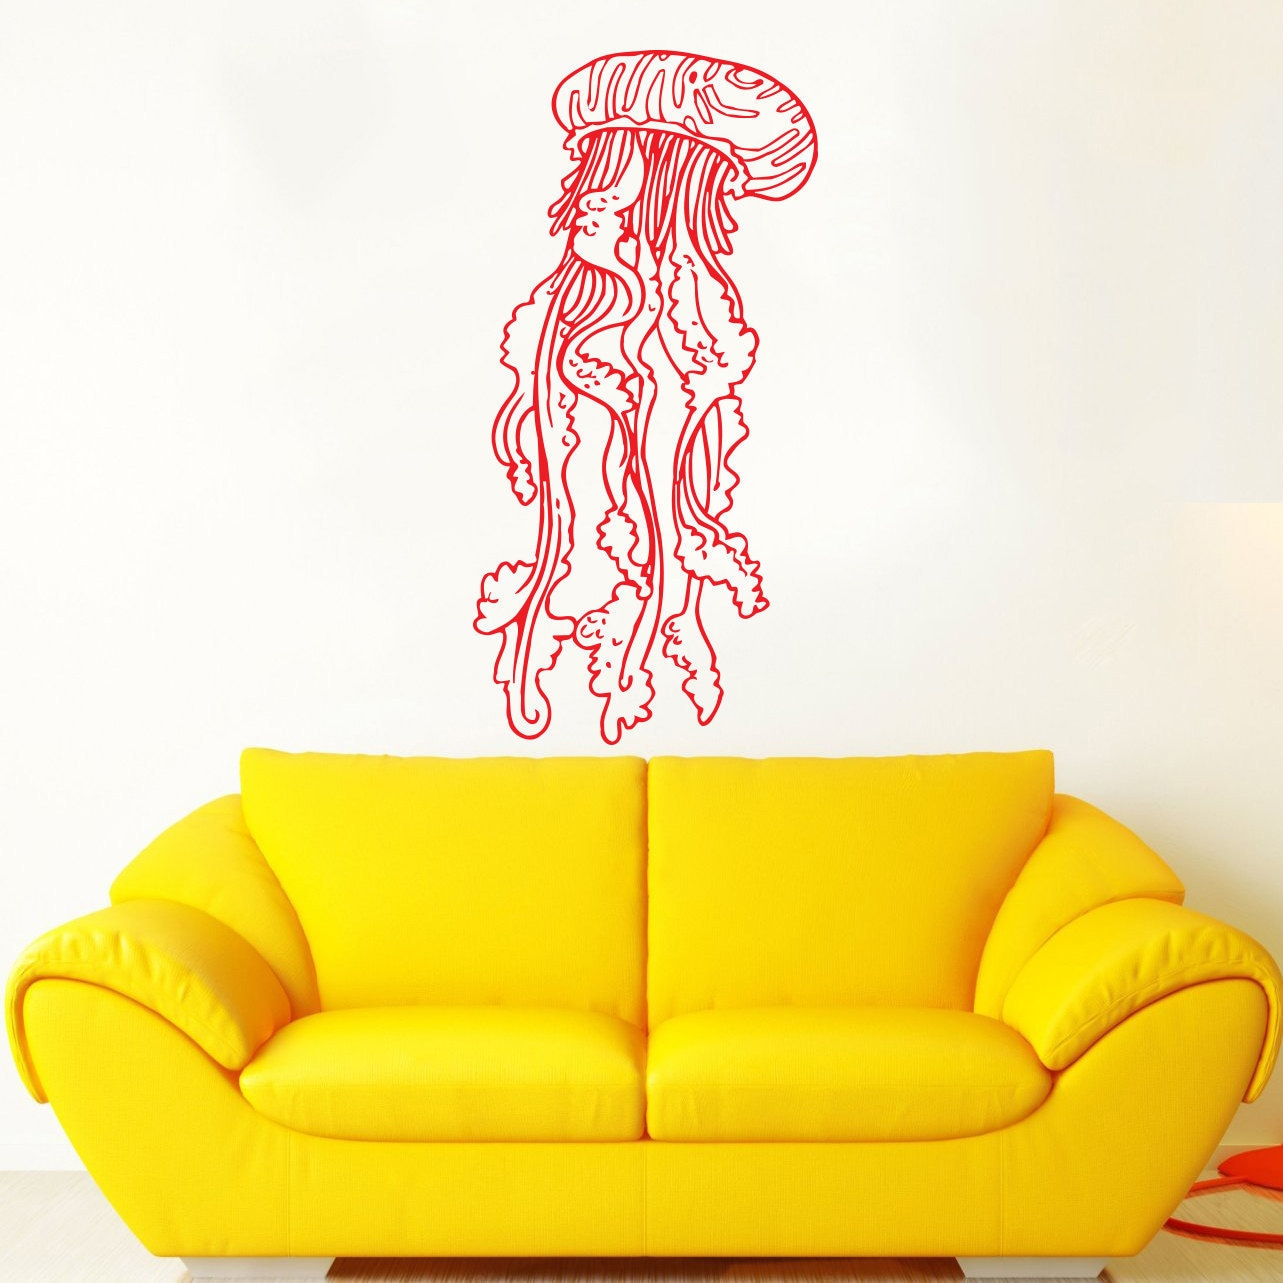 Jellyfish Red Vinyl Sticker Wall Art - Free Shipping On Orders Over ...